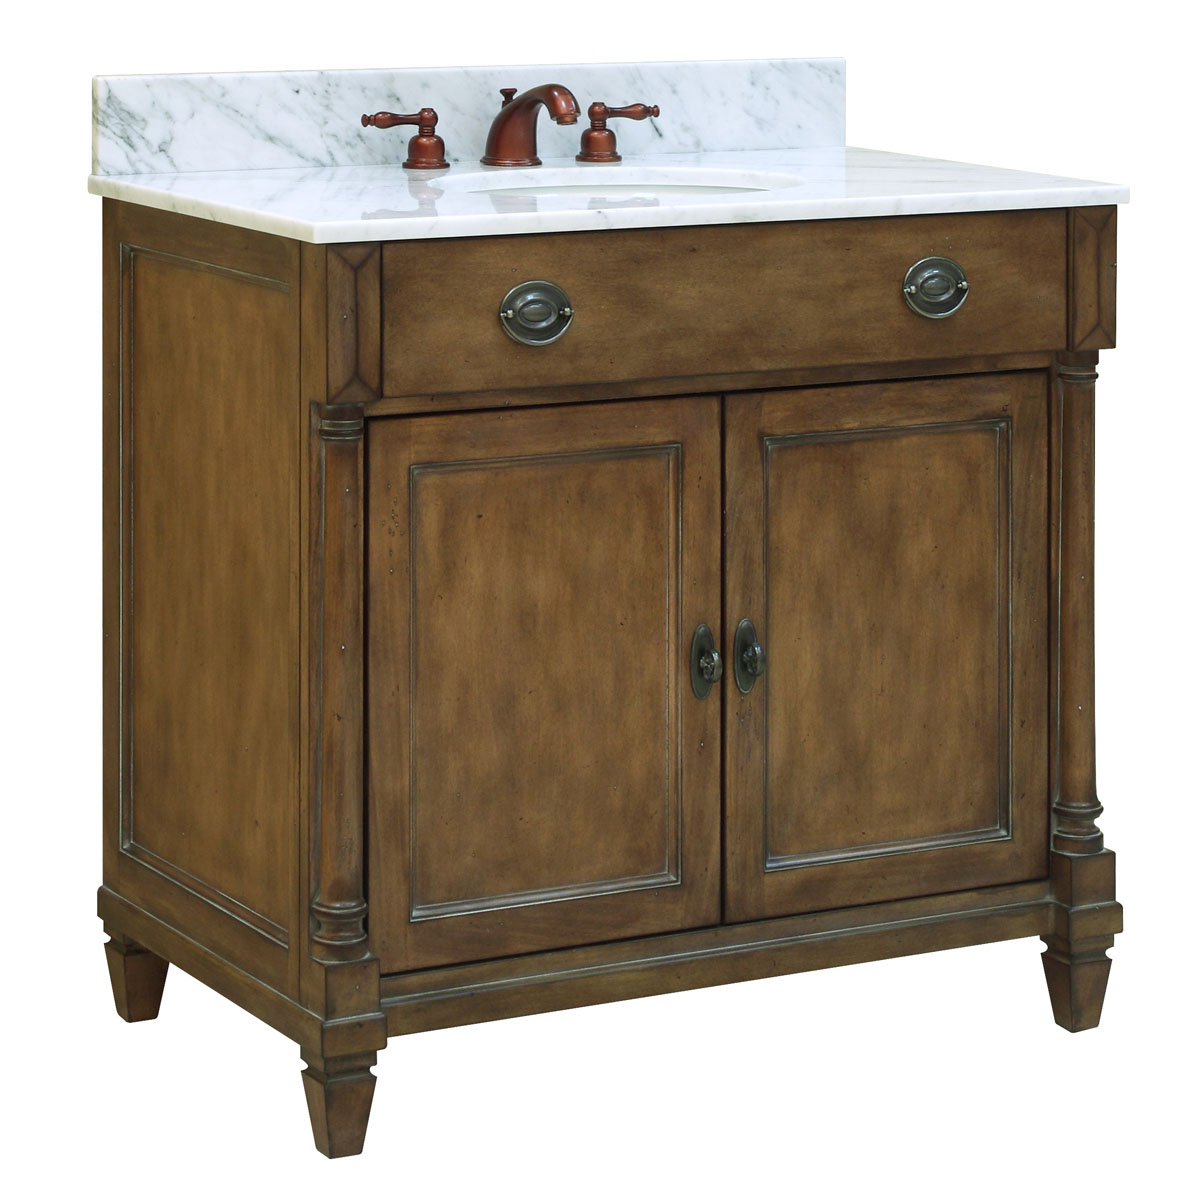 "36"" Regency Place Single Vanity - Shown with optional Carrera White marble top"